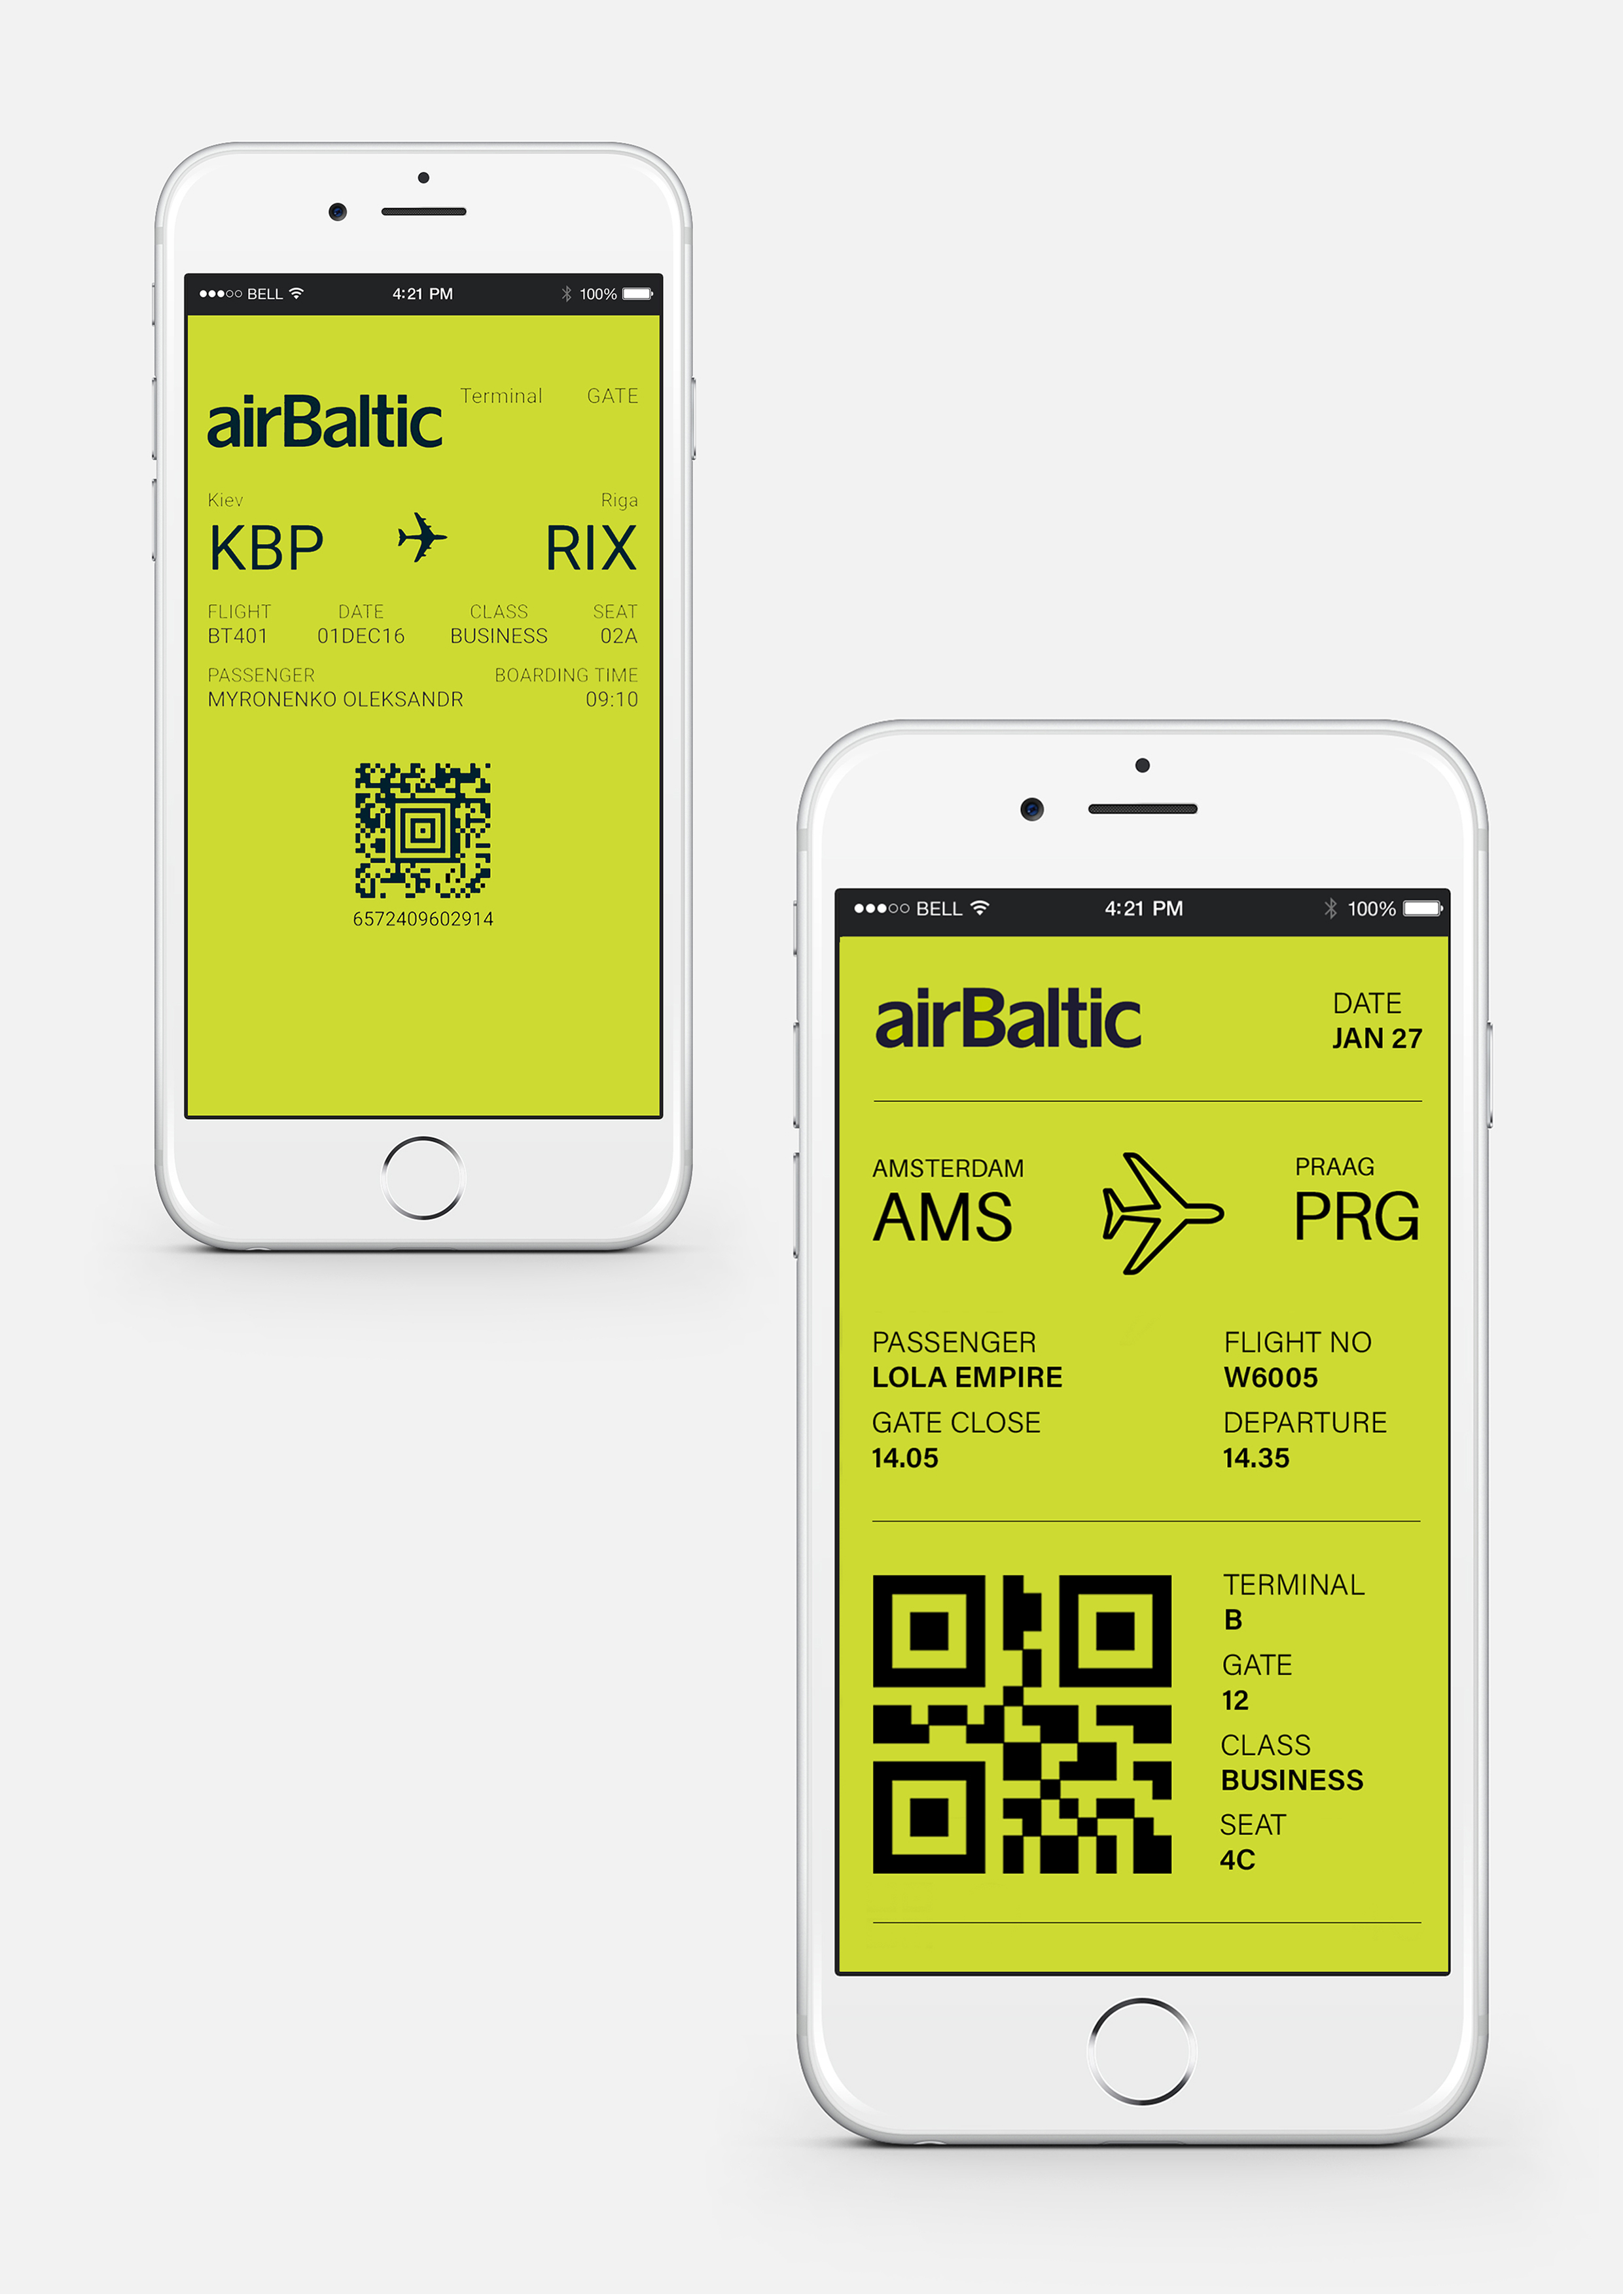 Ticket Redesign for Air Baltic implementing IA (information architecture), UI (user interface) and UX (user experience) principles   The original e-ticket had no sense of structure, the elements were placed randomly with no regard for usability.  On the redesigned version the information hierarchy is well-defined and easy to follow. Starting with the very first thing you need to know about your journey (the date) to the very last (your seat), the information is also broken down into two parts: before your arrival at the airport and after.